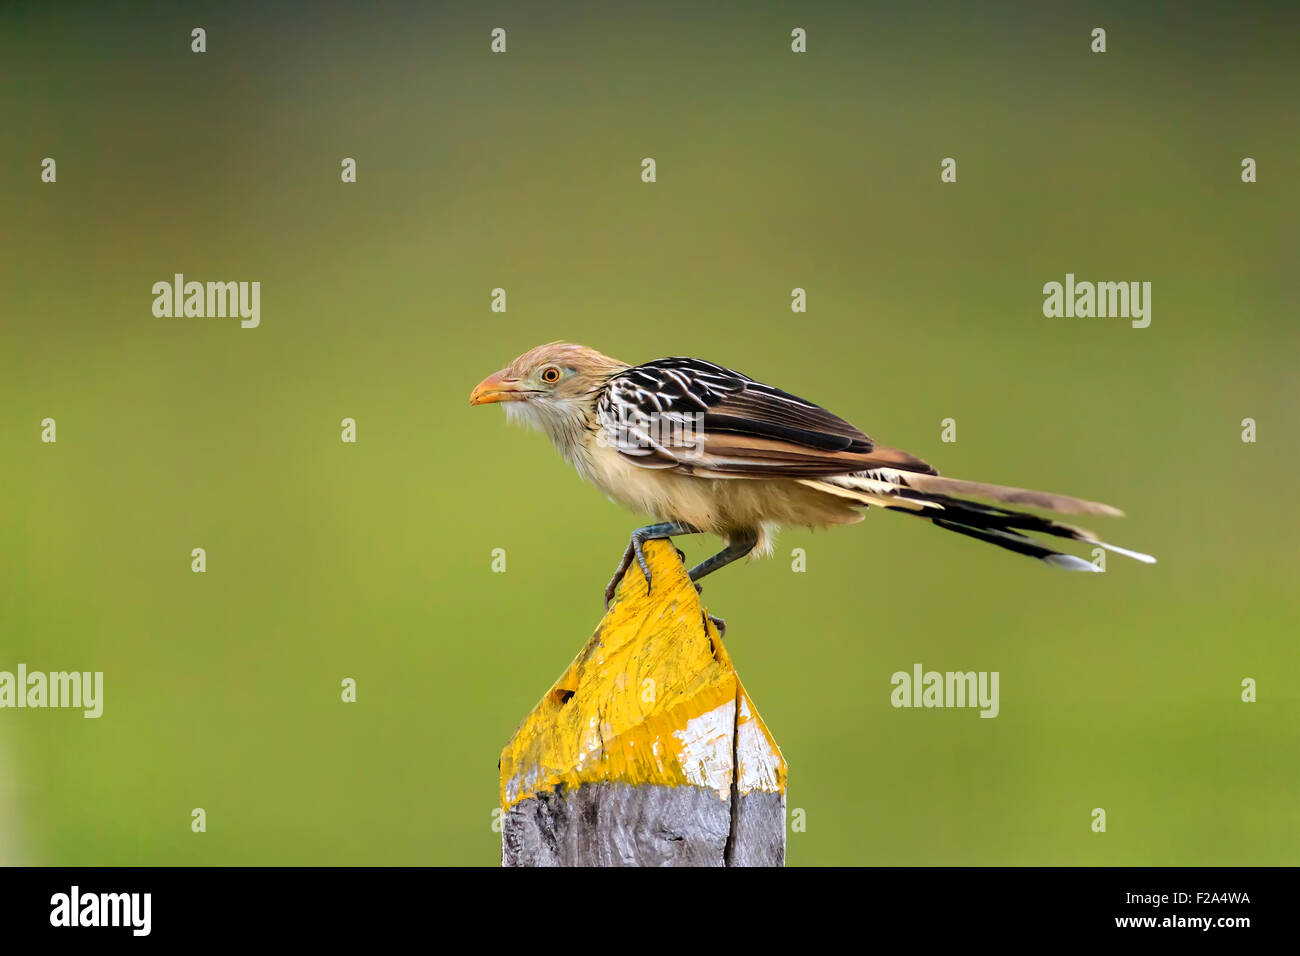 Guira cuckoo (Guira Guira), adult on the lookout, Pantanal, Mato Grosso, Brazil - Stock Image